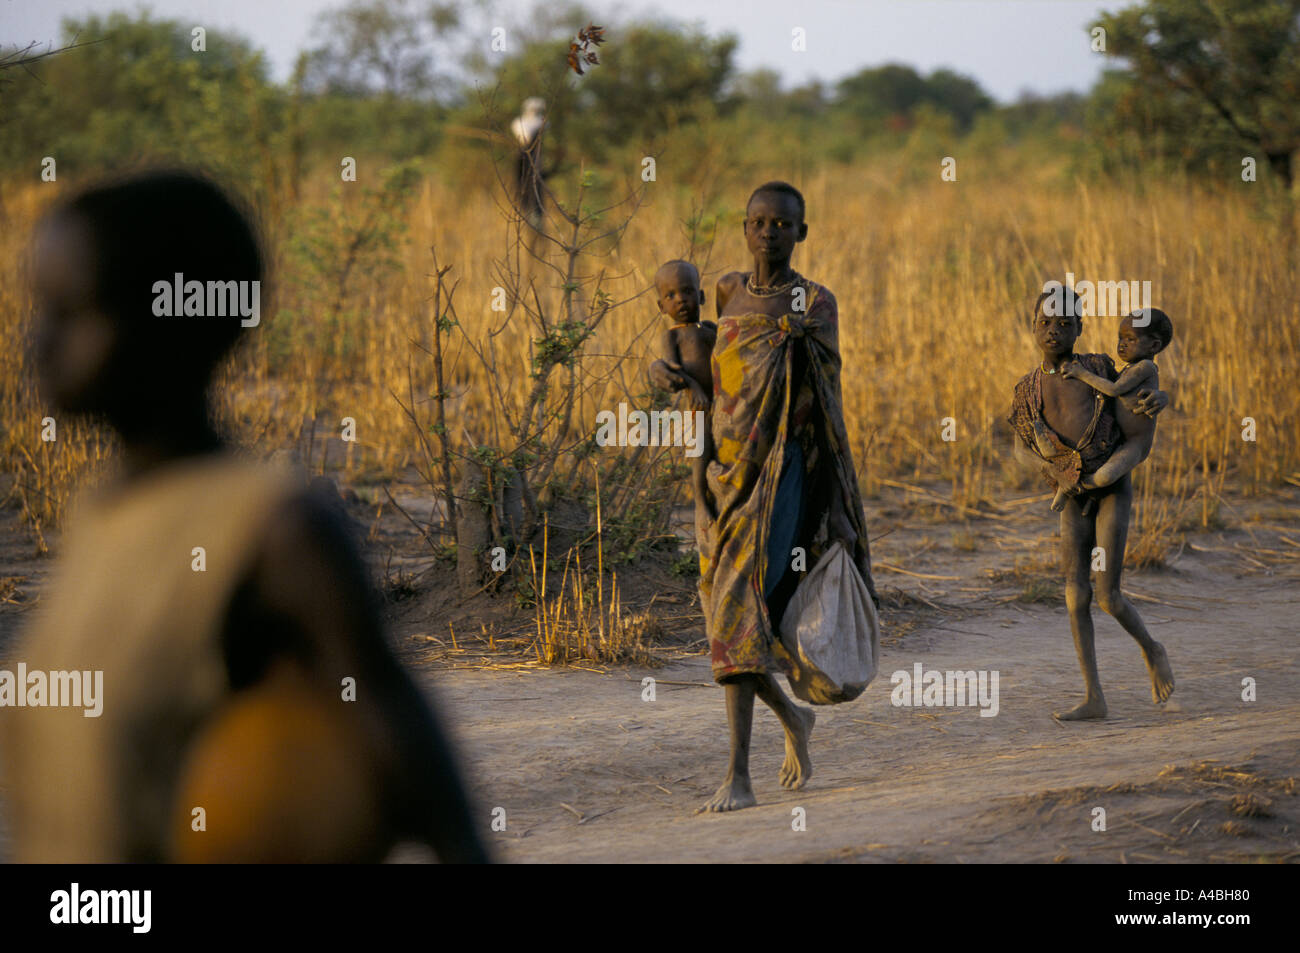 Southern sudan ageip village malnourished family mother carrying southern sudan ageip village malnourished family mother carrying children walking on road sciox Images